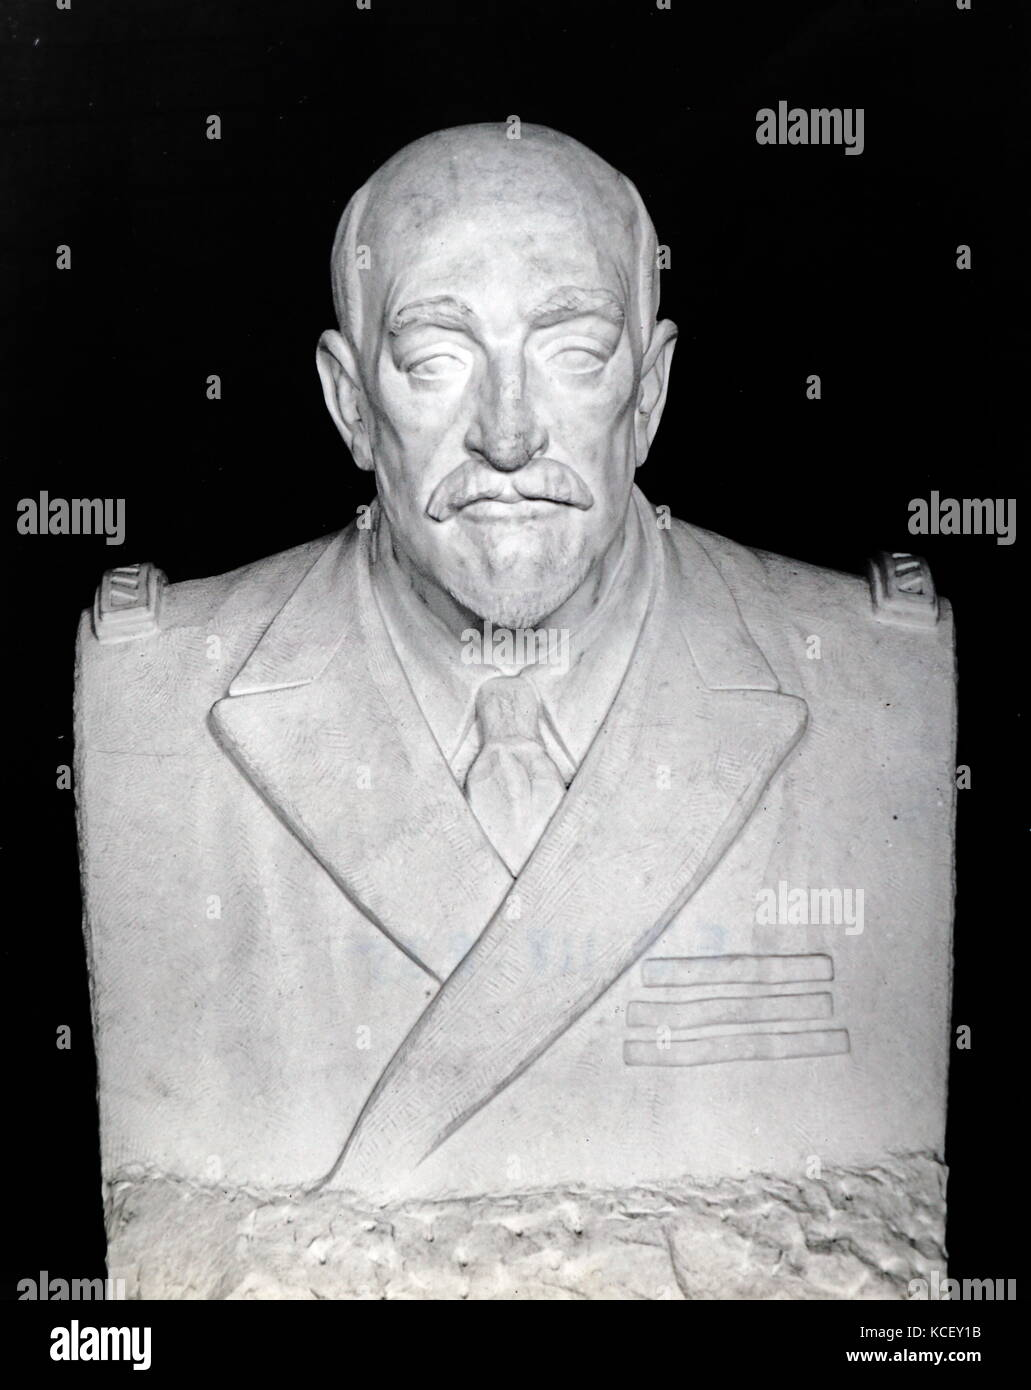 Bust of Jean-Martin Charcot (1825-1893) a French neurologist and professor of anatomical pathology. Dated 19th Century - Stock Image